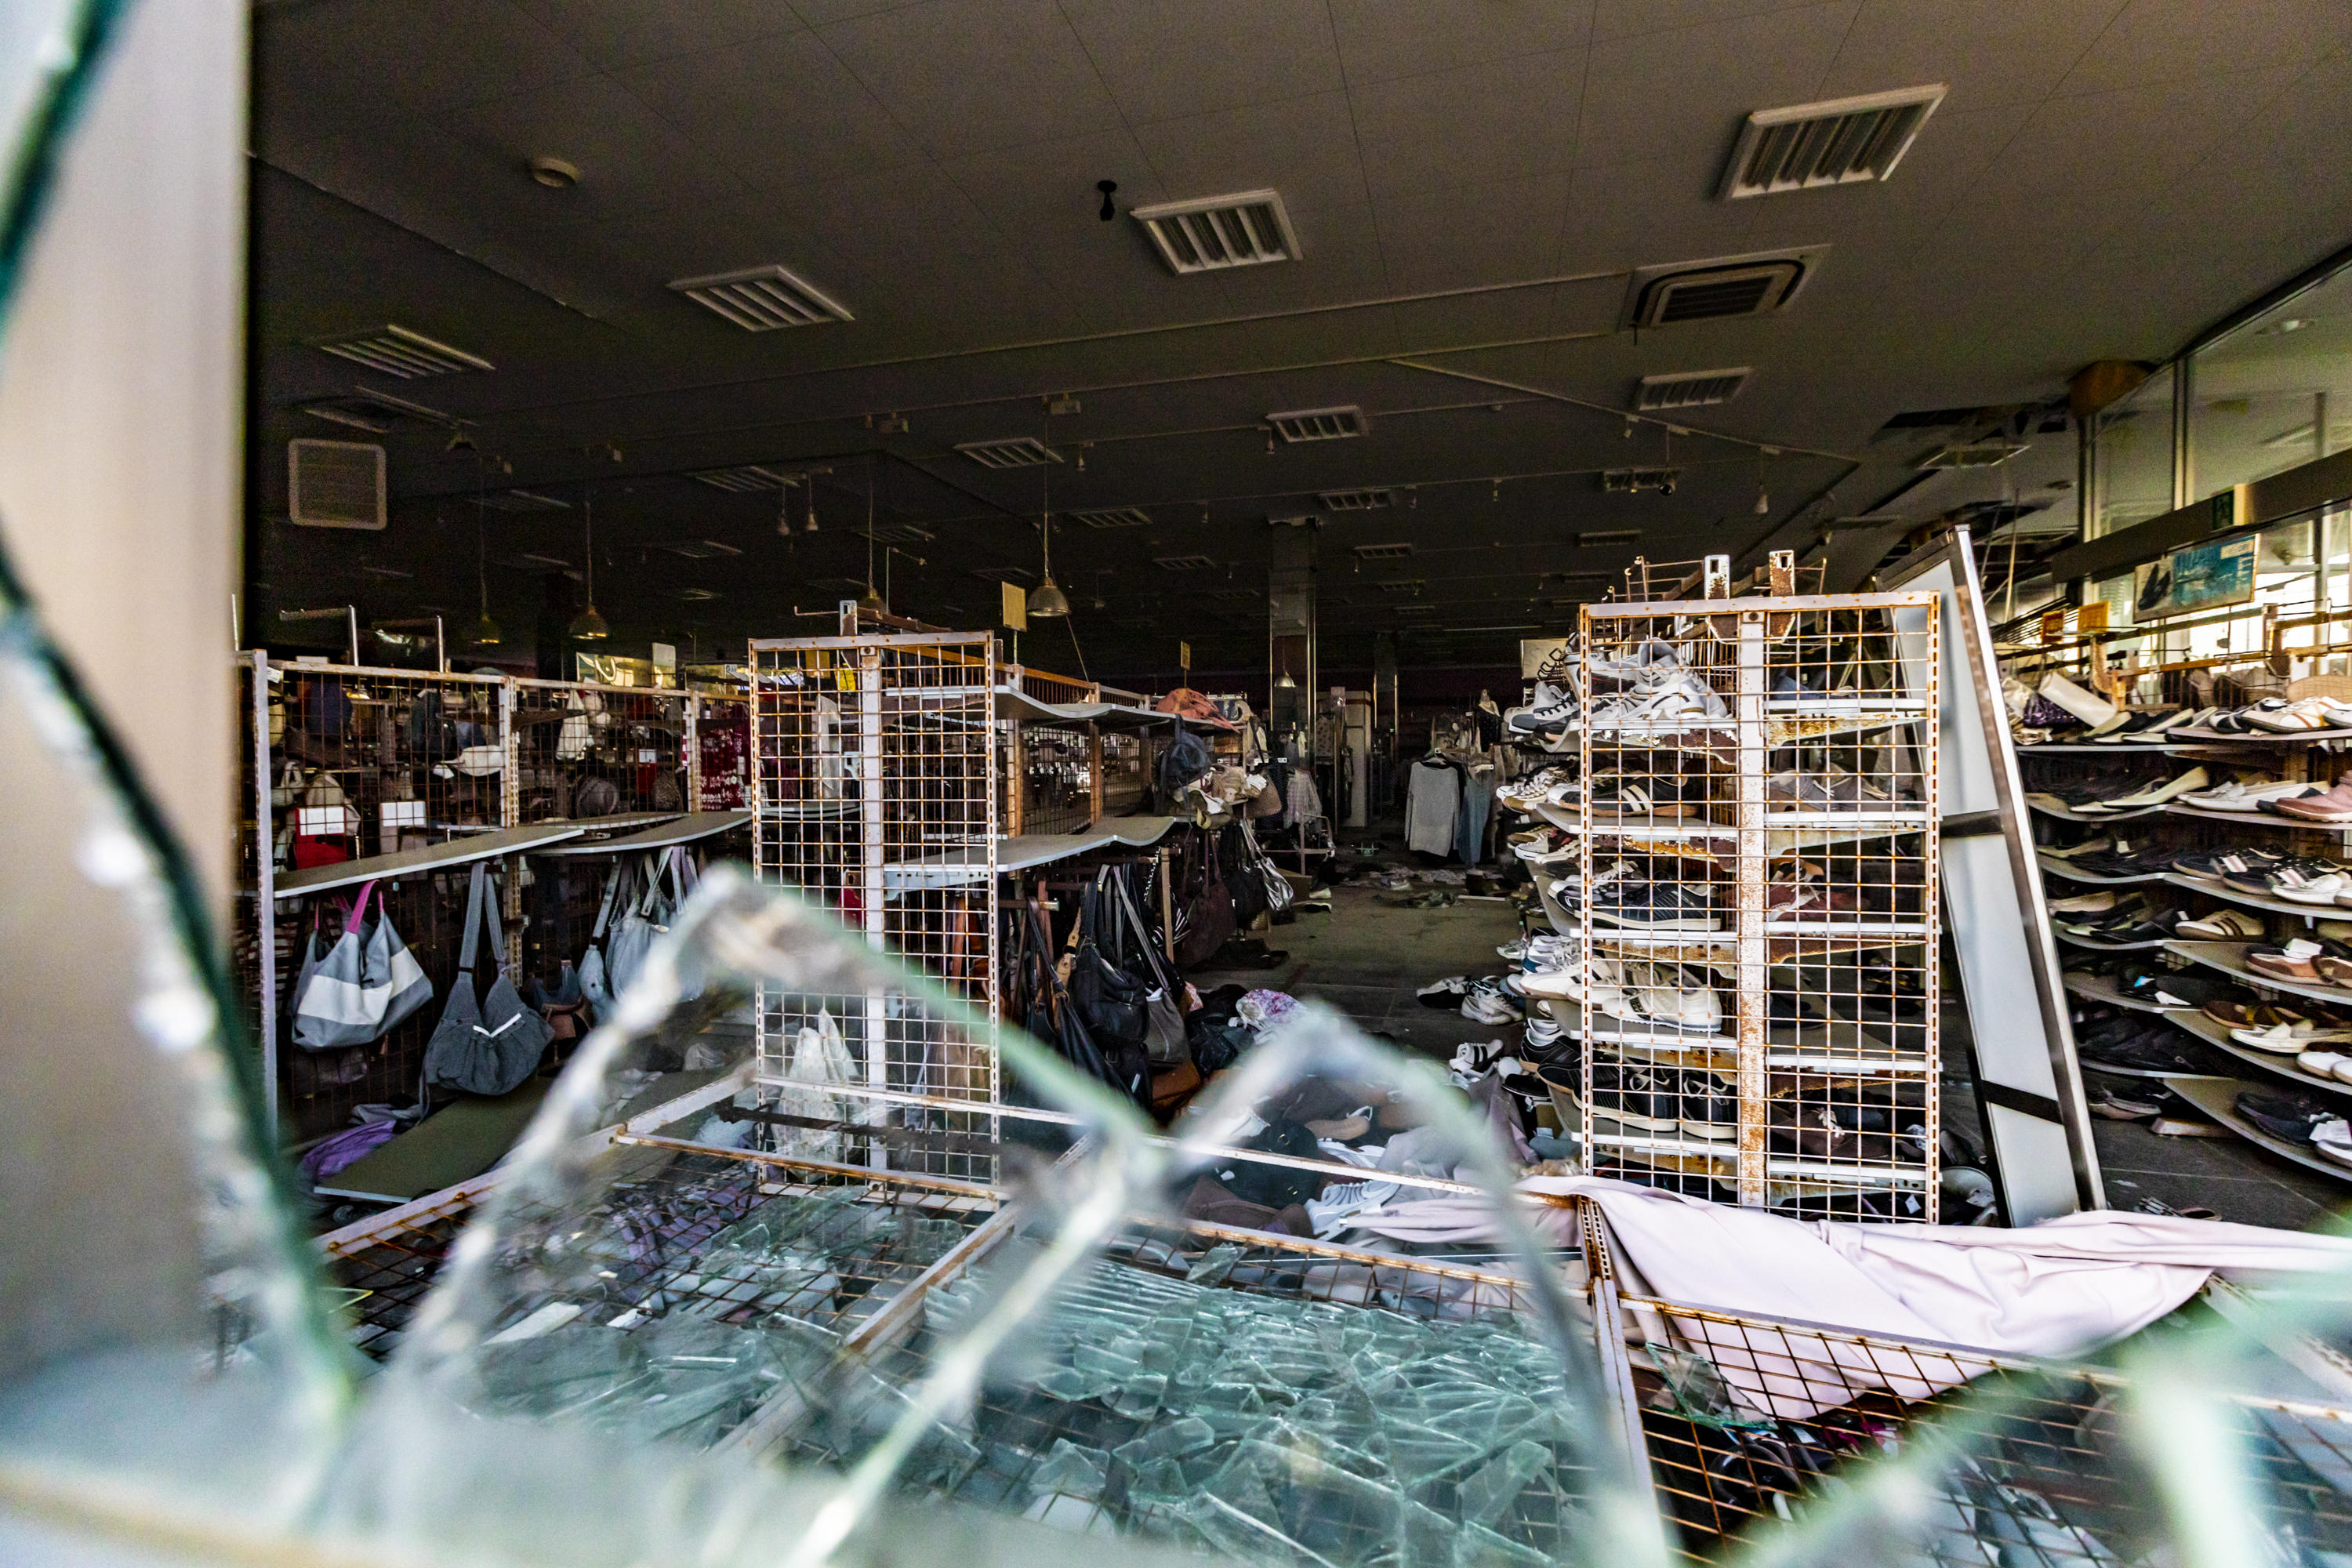 Abandoned clothing store in Fukushima prefecture, Japan